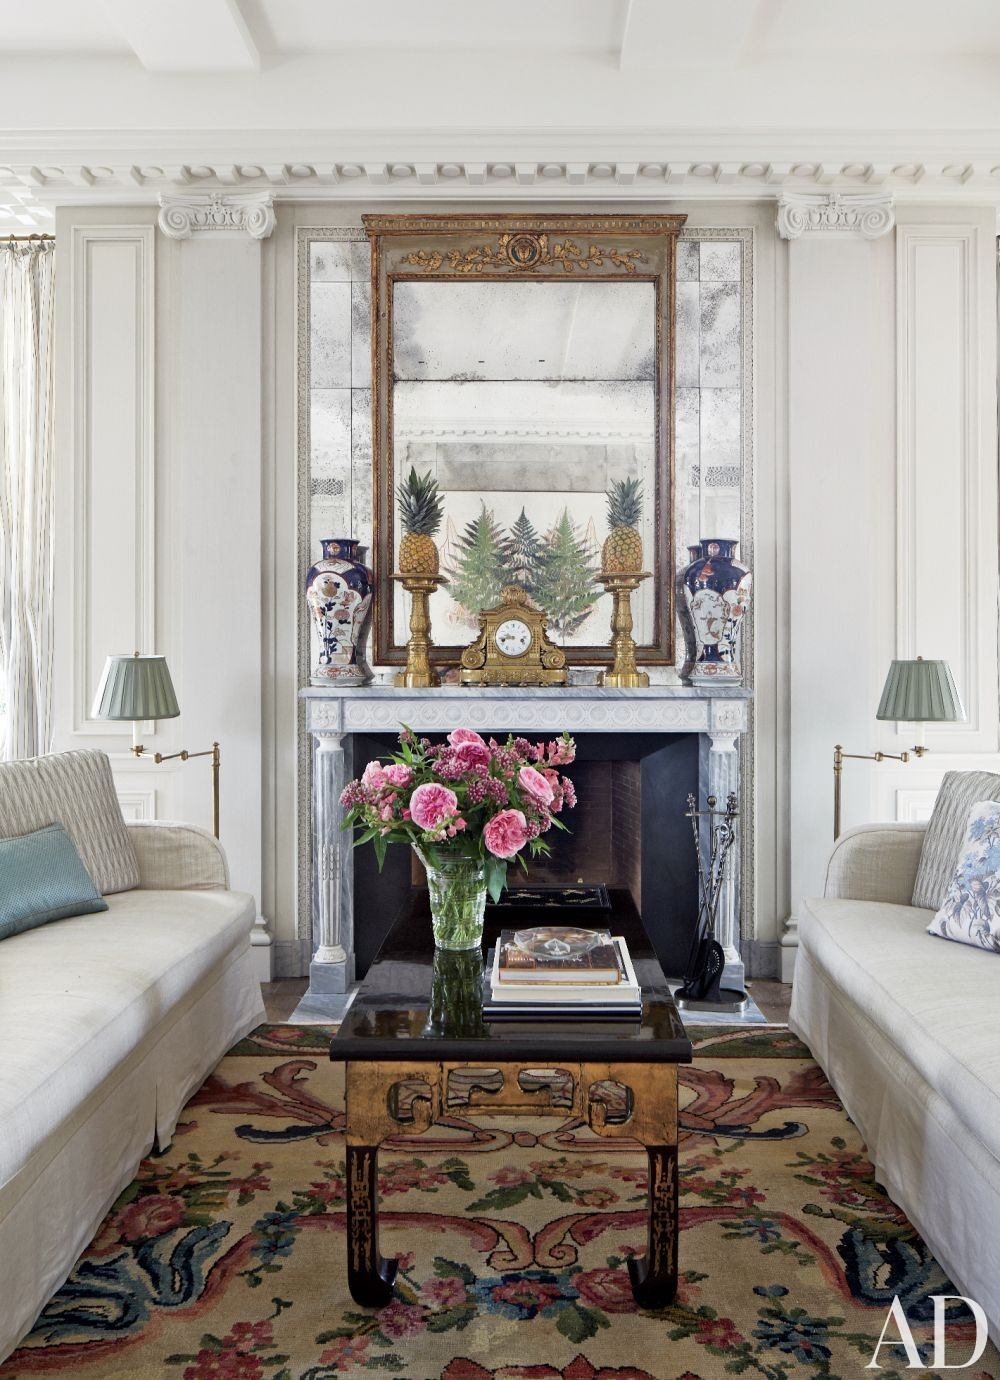 Traditional Living Room by Darryl Carter Inc. and Donald Lococo Architects in Washington, D.C.